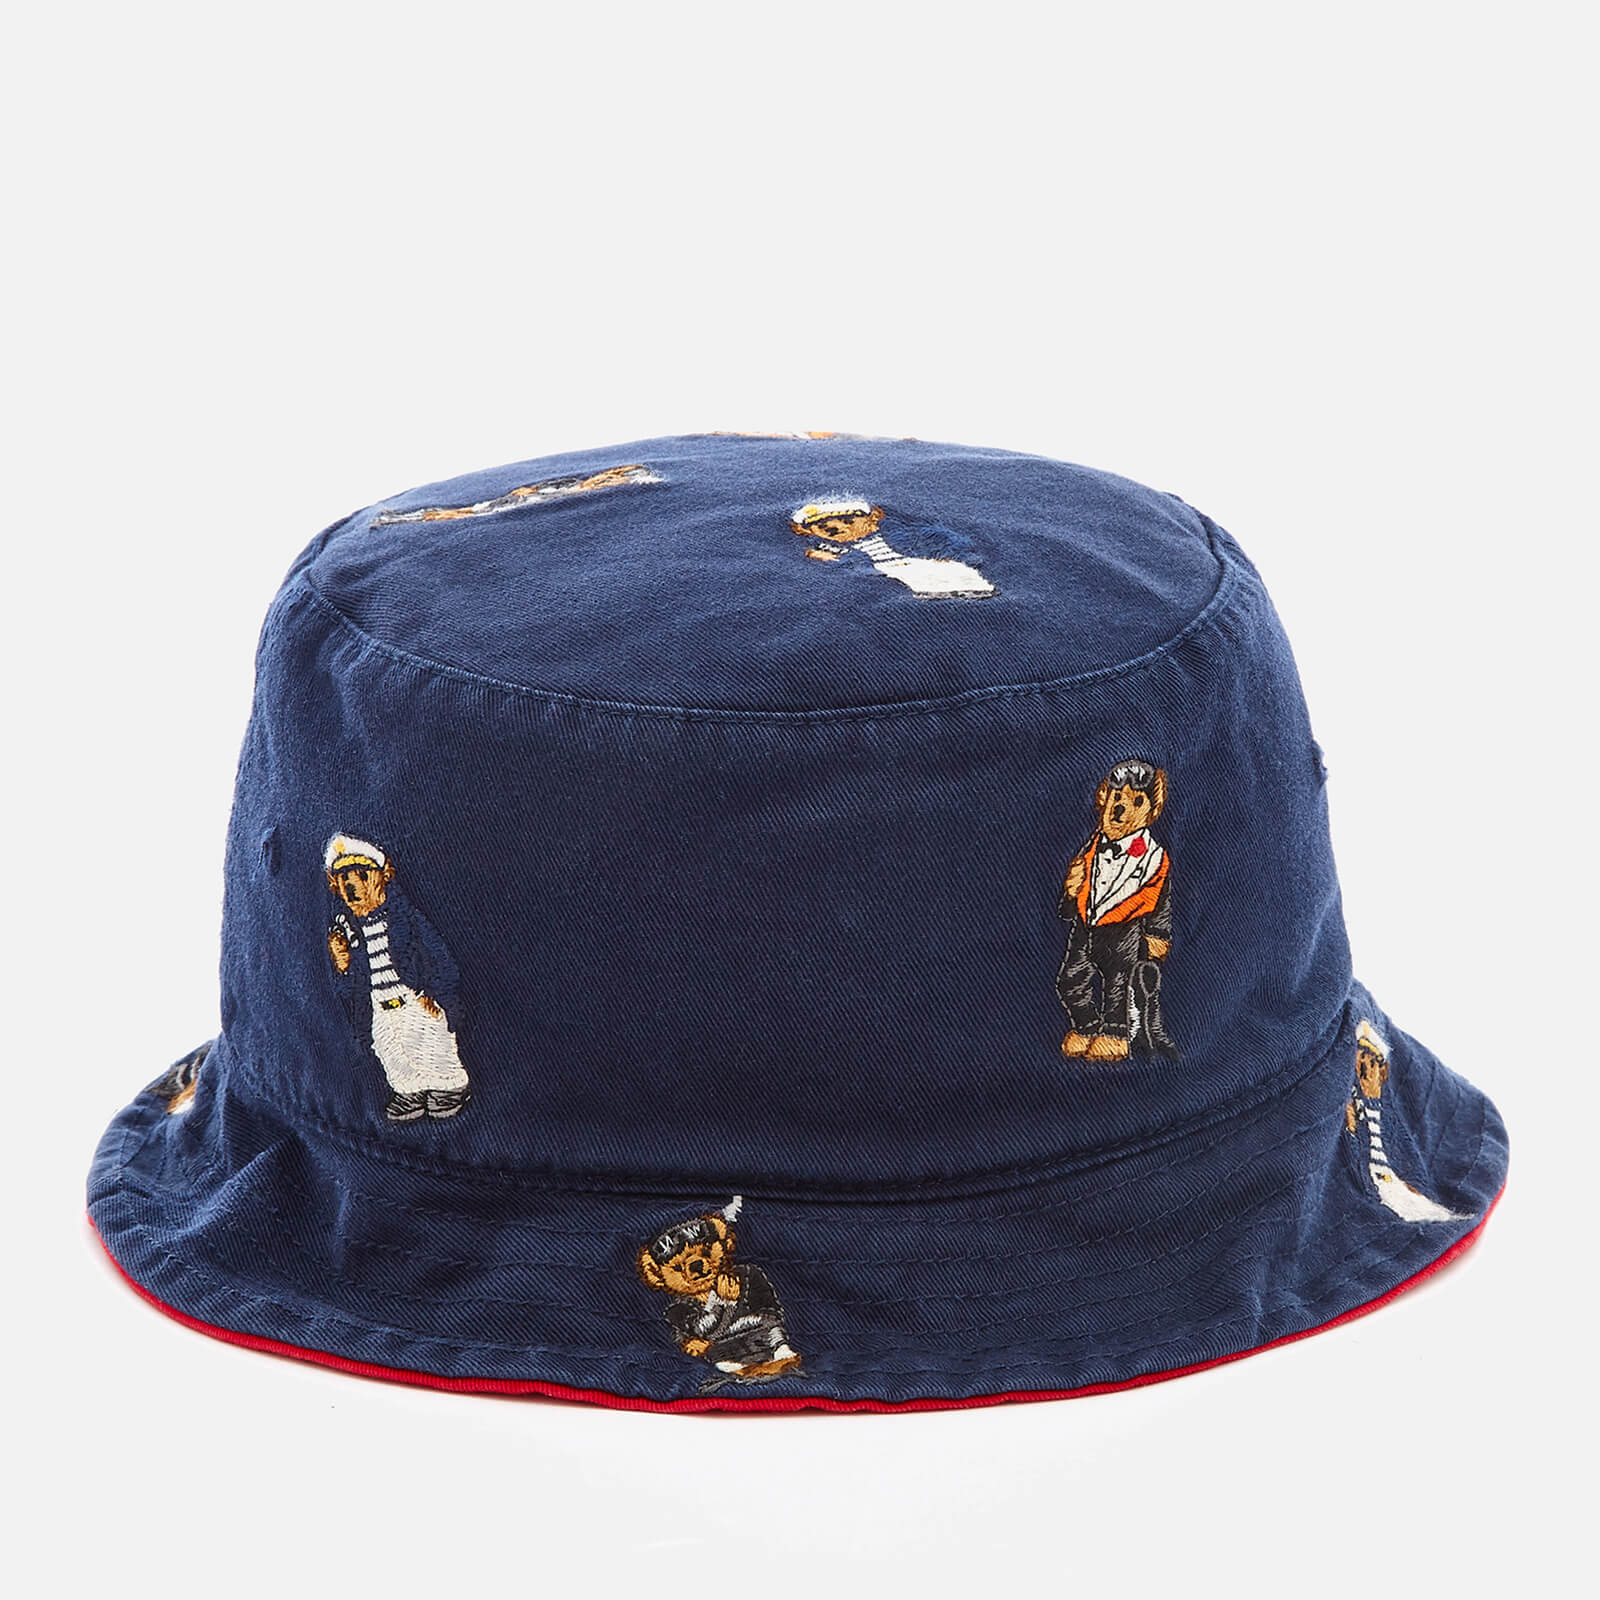 d1ca11032cd7c Polo Ralph Lauren Men s Cotton Chino Bear Bucket Hat - Newport Navy - Free  UK Delivery over £50